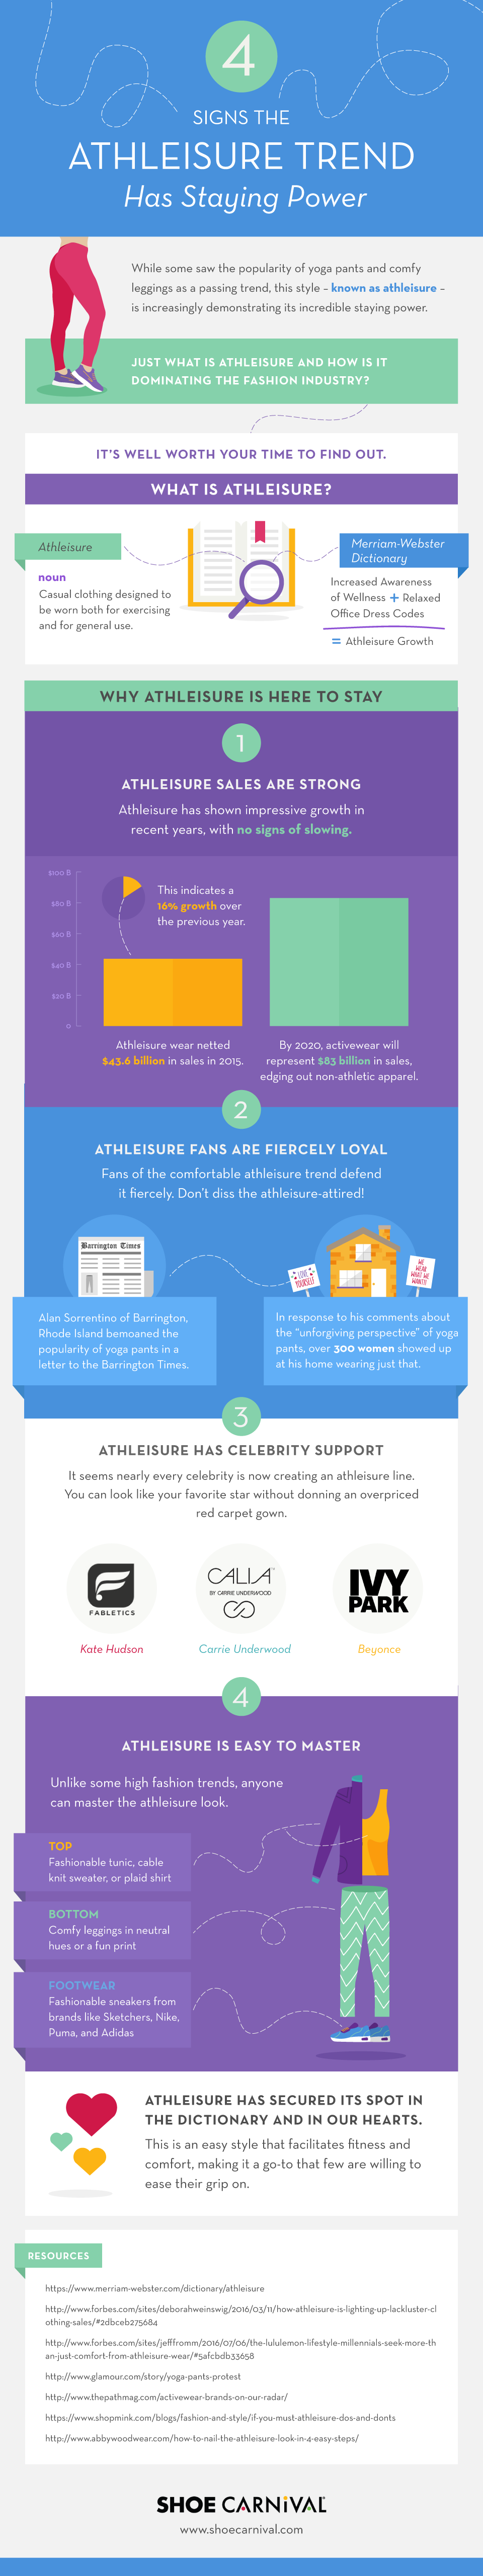 athleisure-infographic